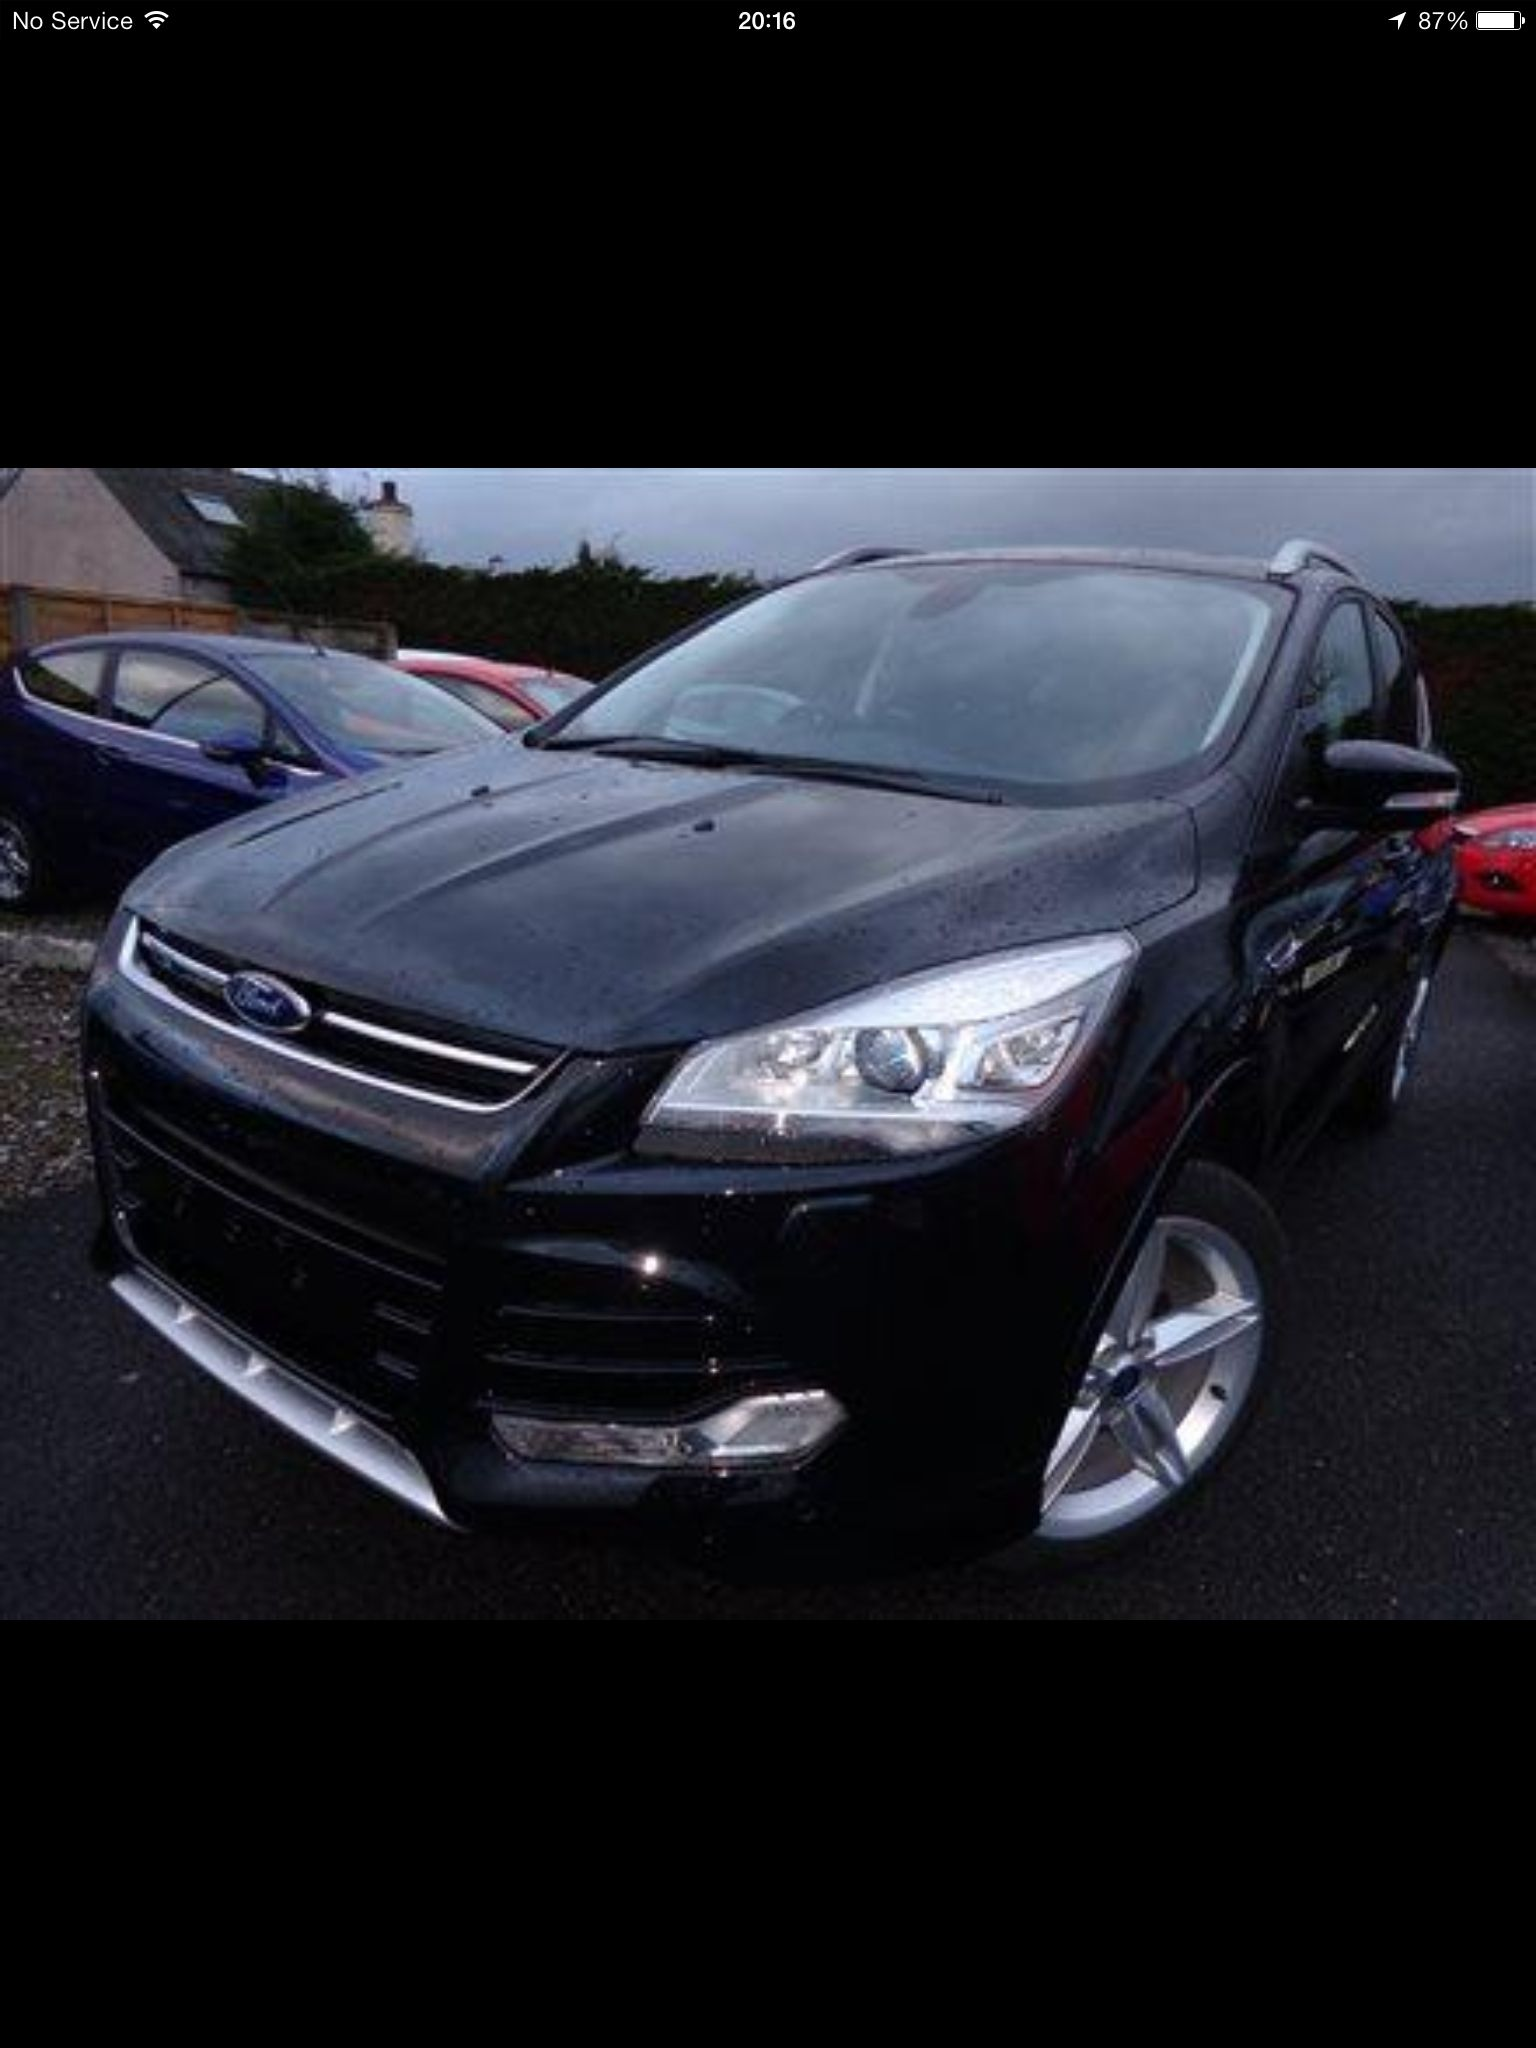 4d0d0a4d4b8536febc9208ccf6a6a174 Cool Review About 2016 Edge Titanium with Awesome Pictures Cars Review